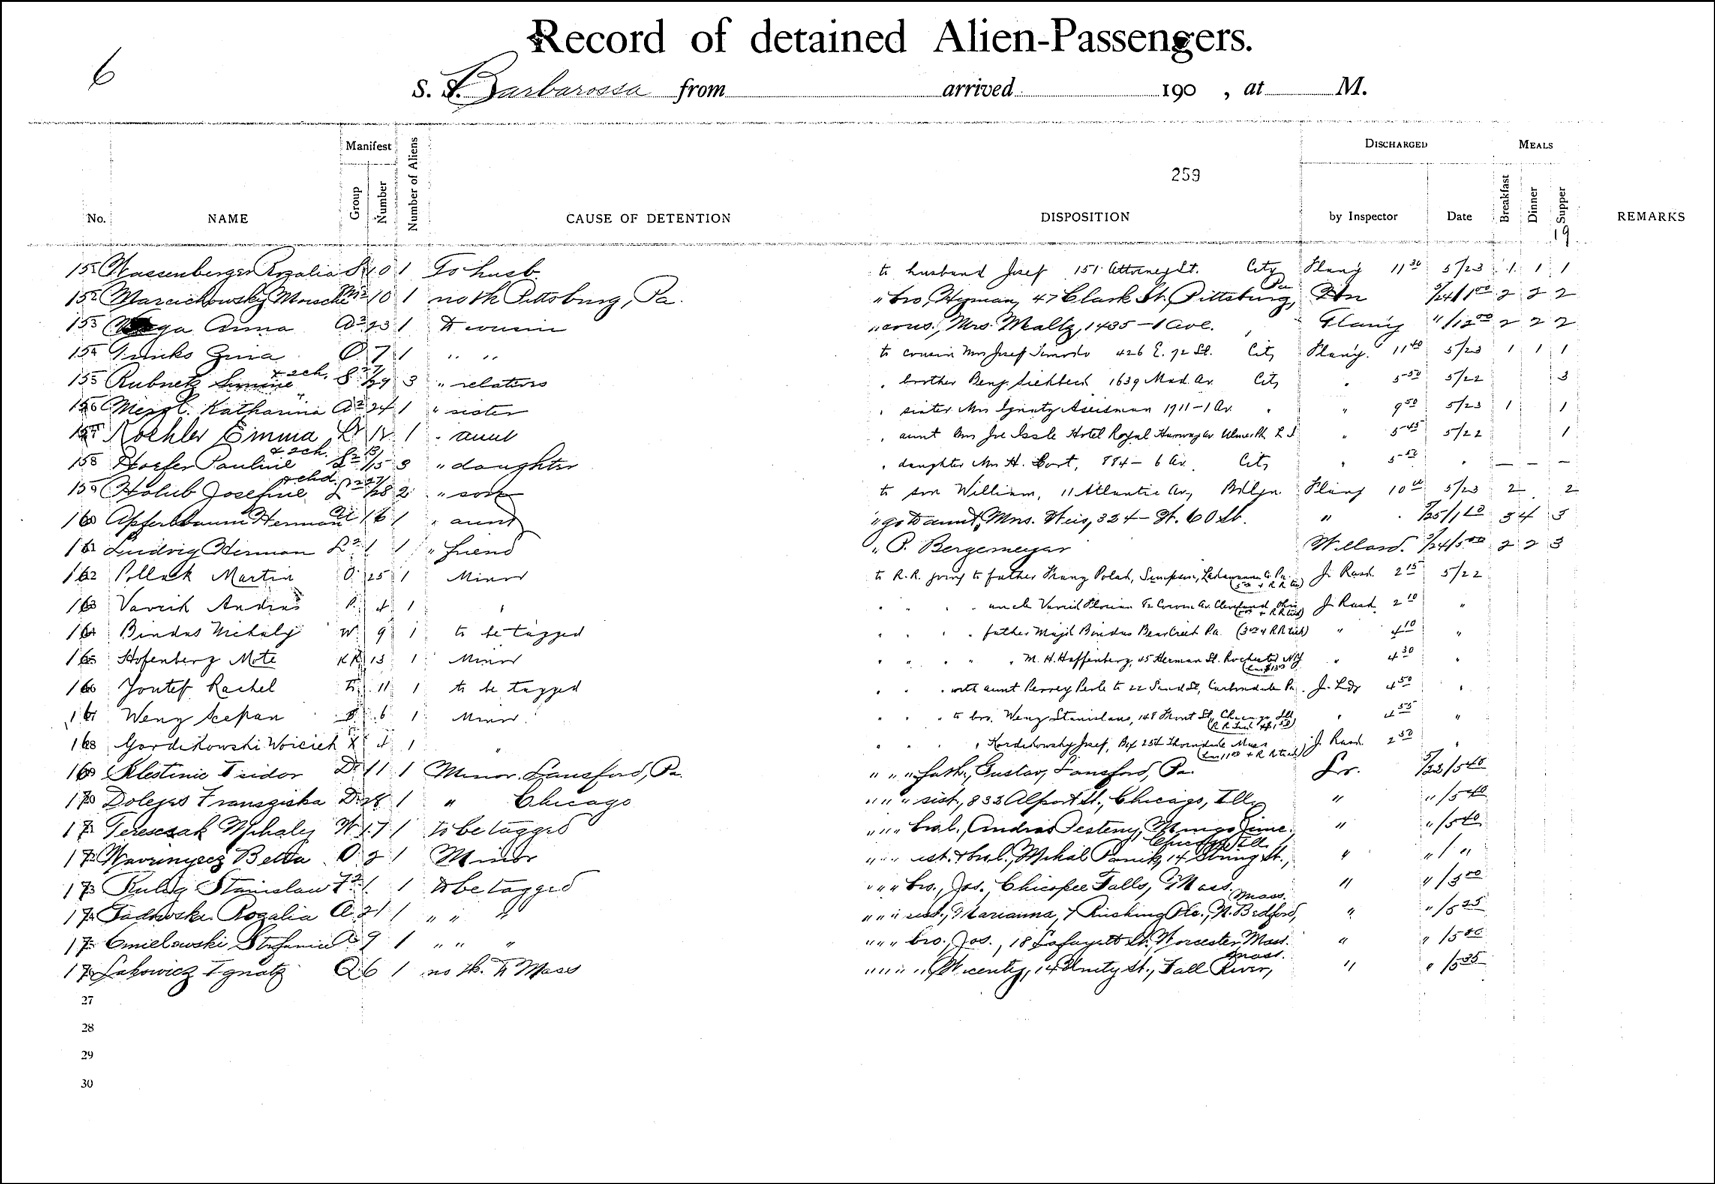 Record of Detained Alien Passengers for Stefania Chmielewska